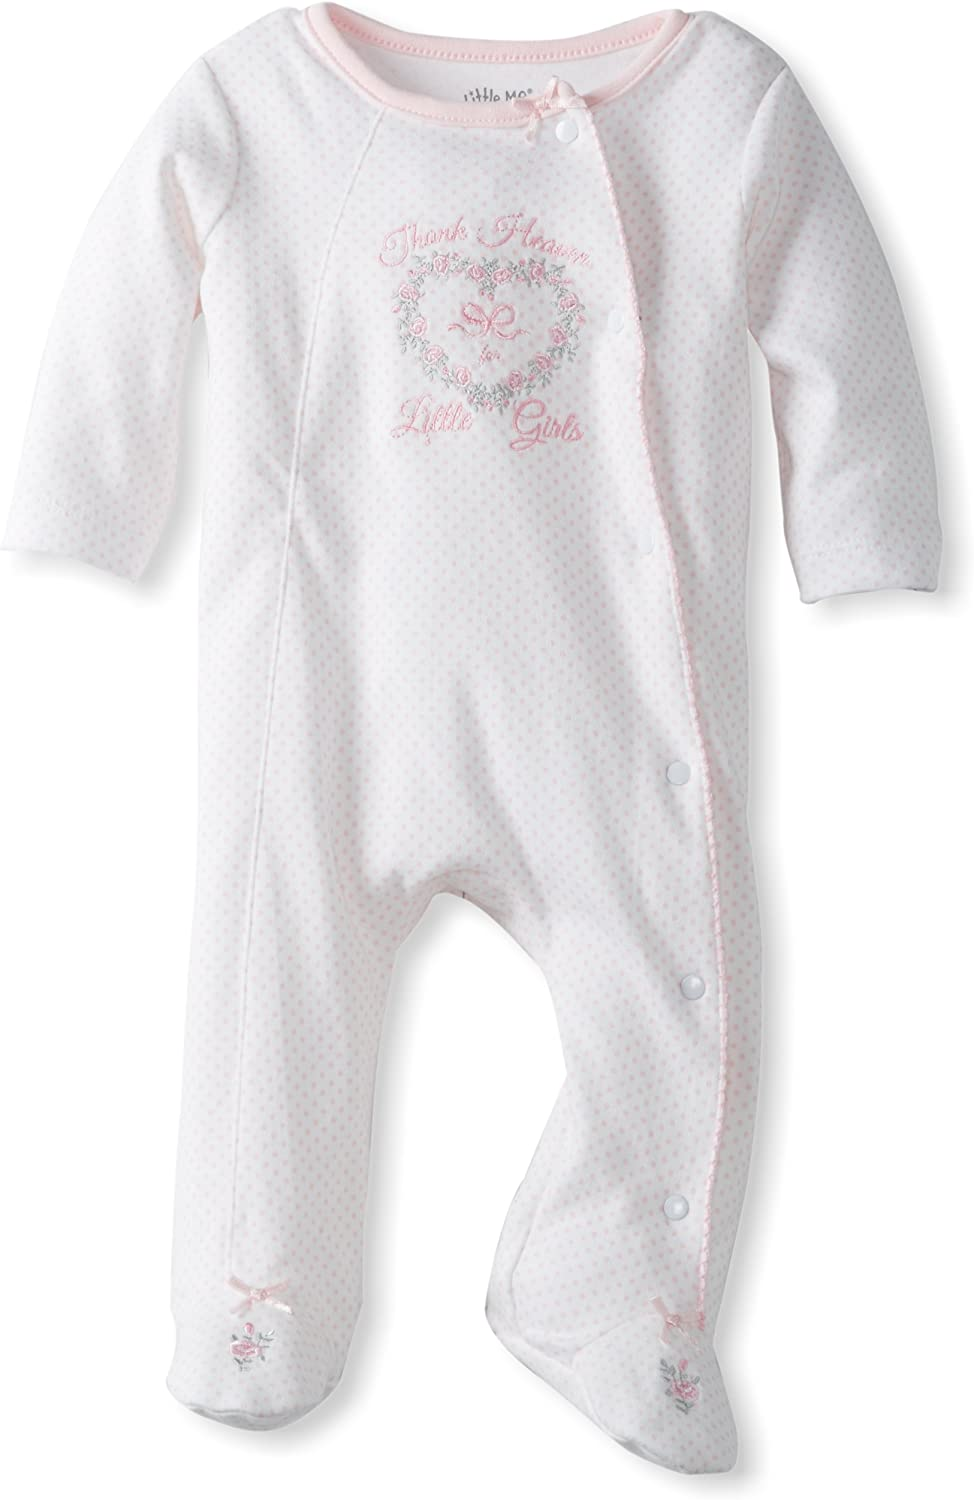 Little Me Baby Girls' Footie Footed Sleeper Pajamas